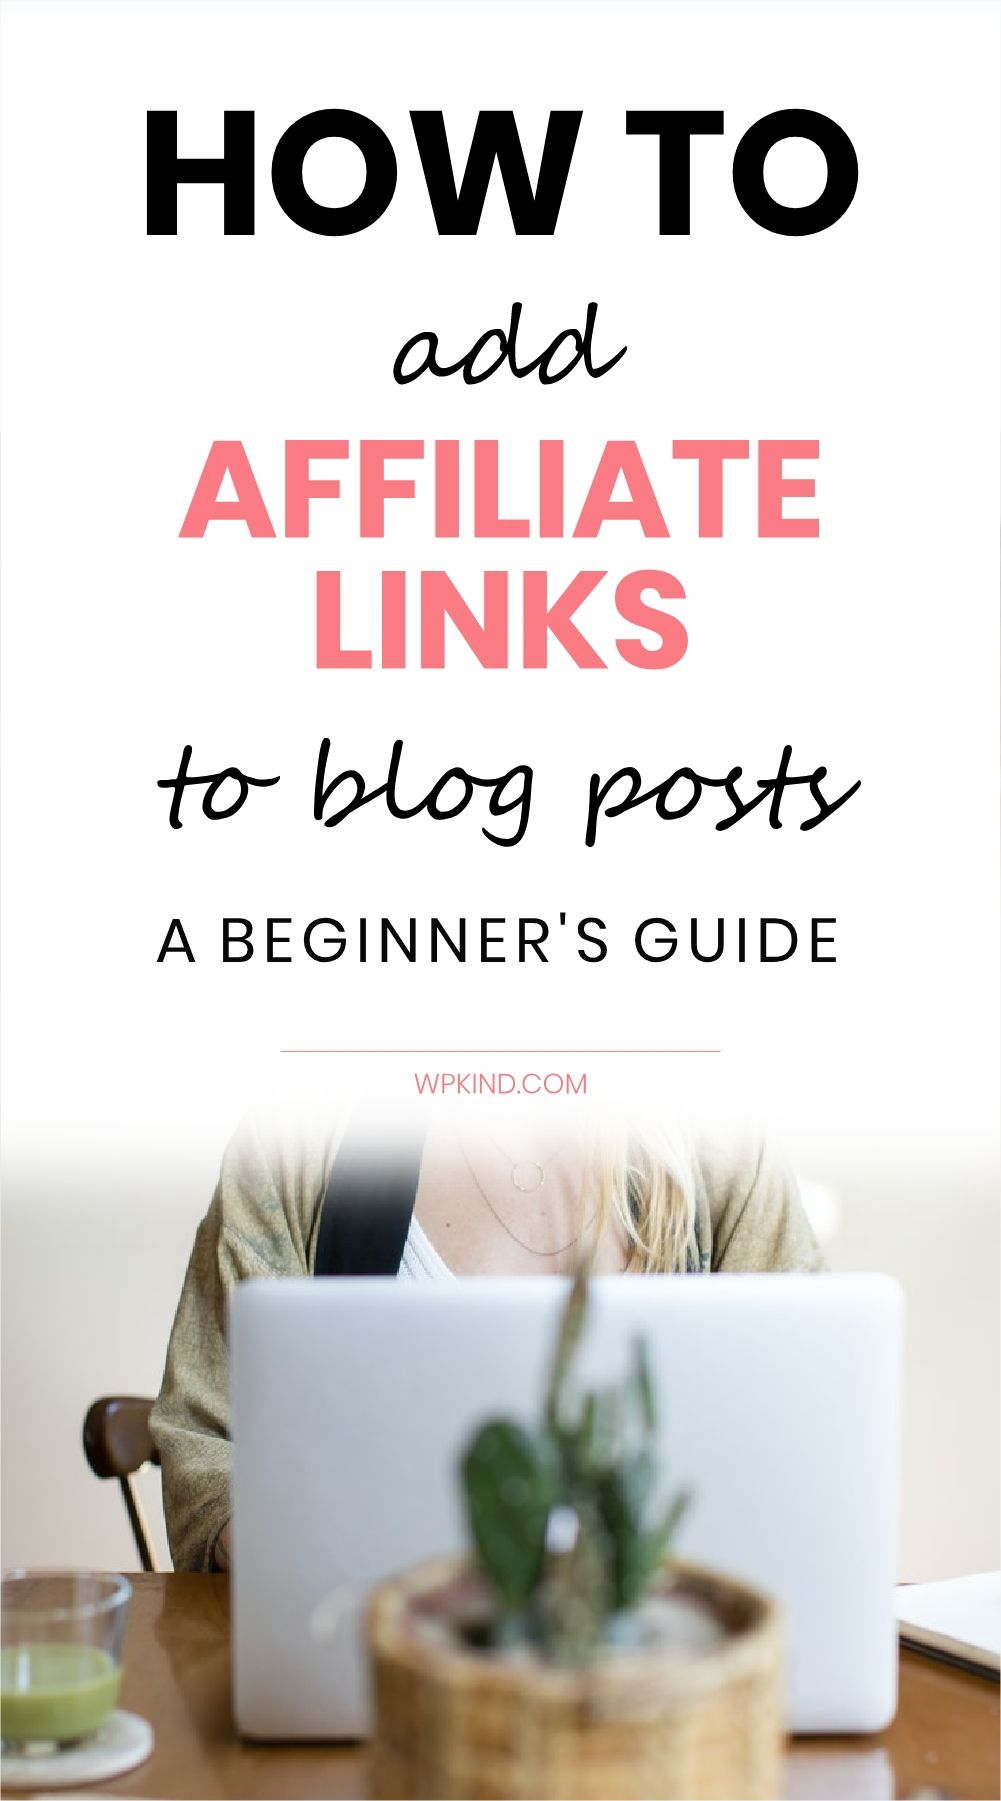 Exactly how to add affiliate links to WordPress blog posts to make money for your blogging business. It is very easy to do using this free plugin. I also cover where to find products to promote and how to disclose affiliate income to your readers to keep your blog legal. #bloggingtips #bloggingforbeginners #wordpresstips #wordpresstutorials